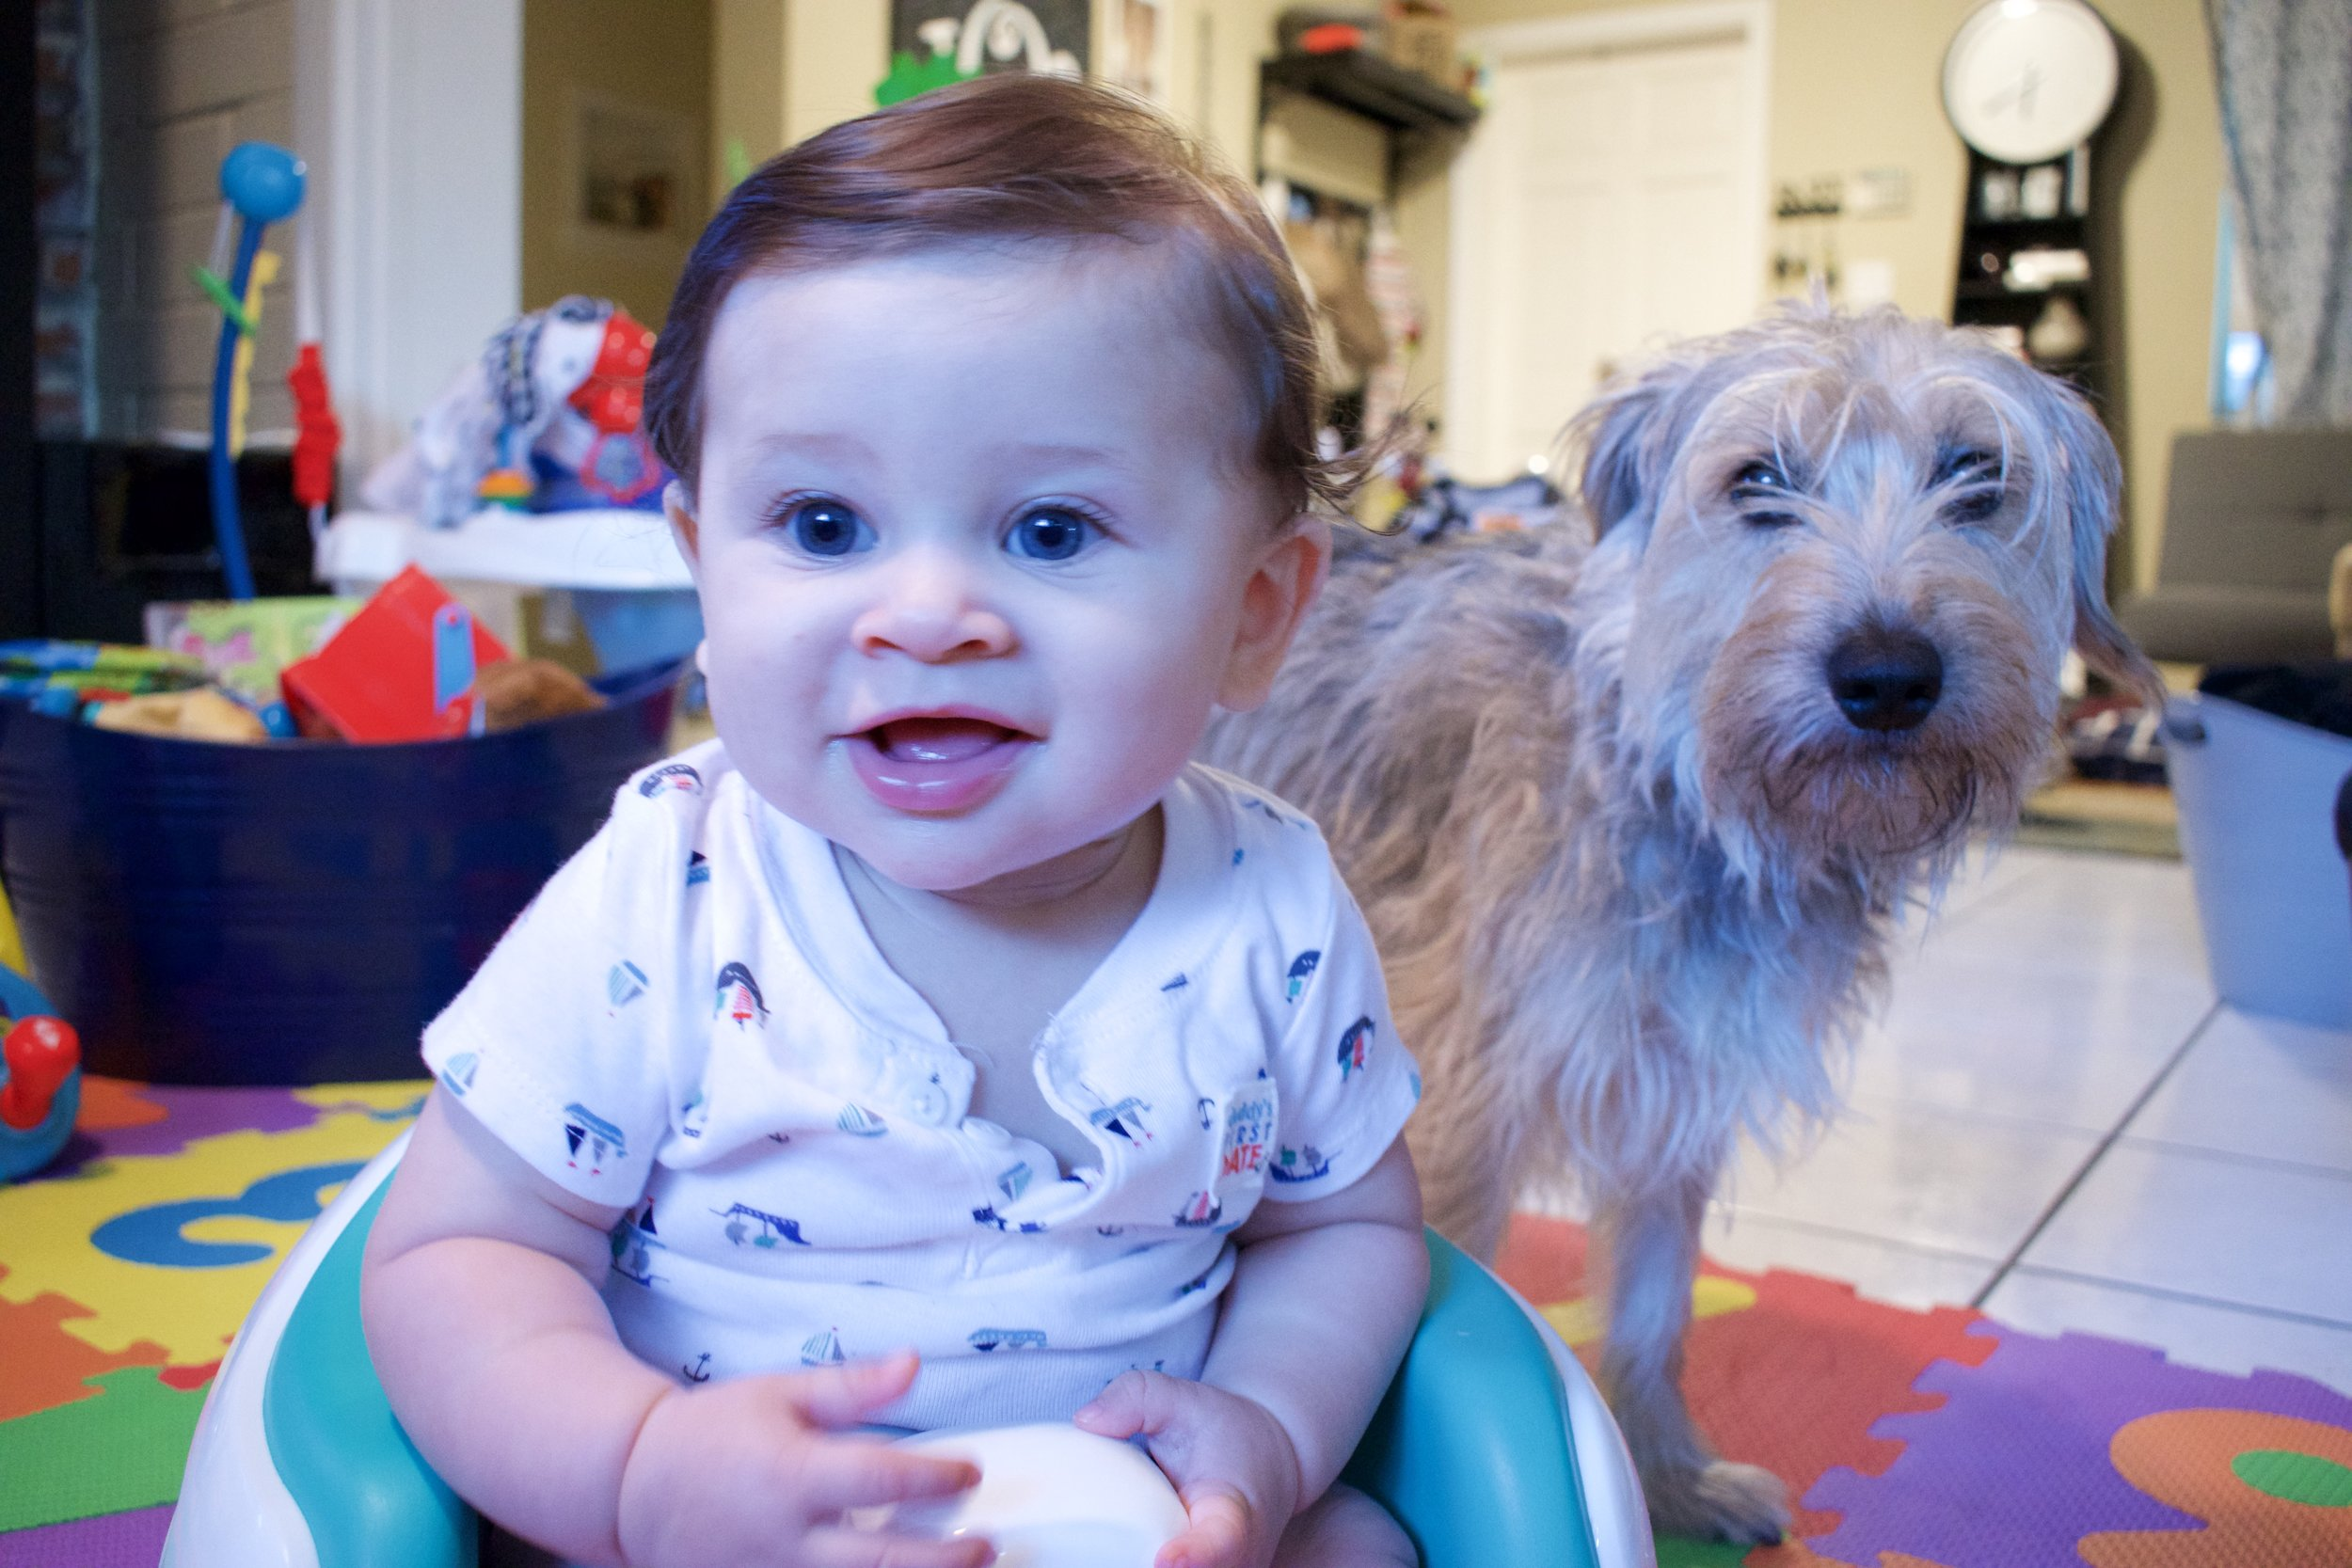 The only family member who prefers the Bumbo, Chili likes how easy it is to lick up anything that misses Noah's mouth.